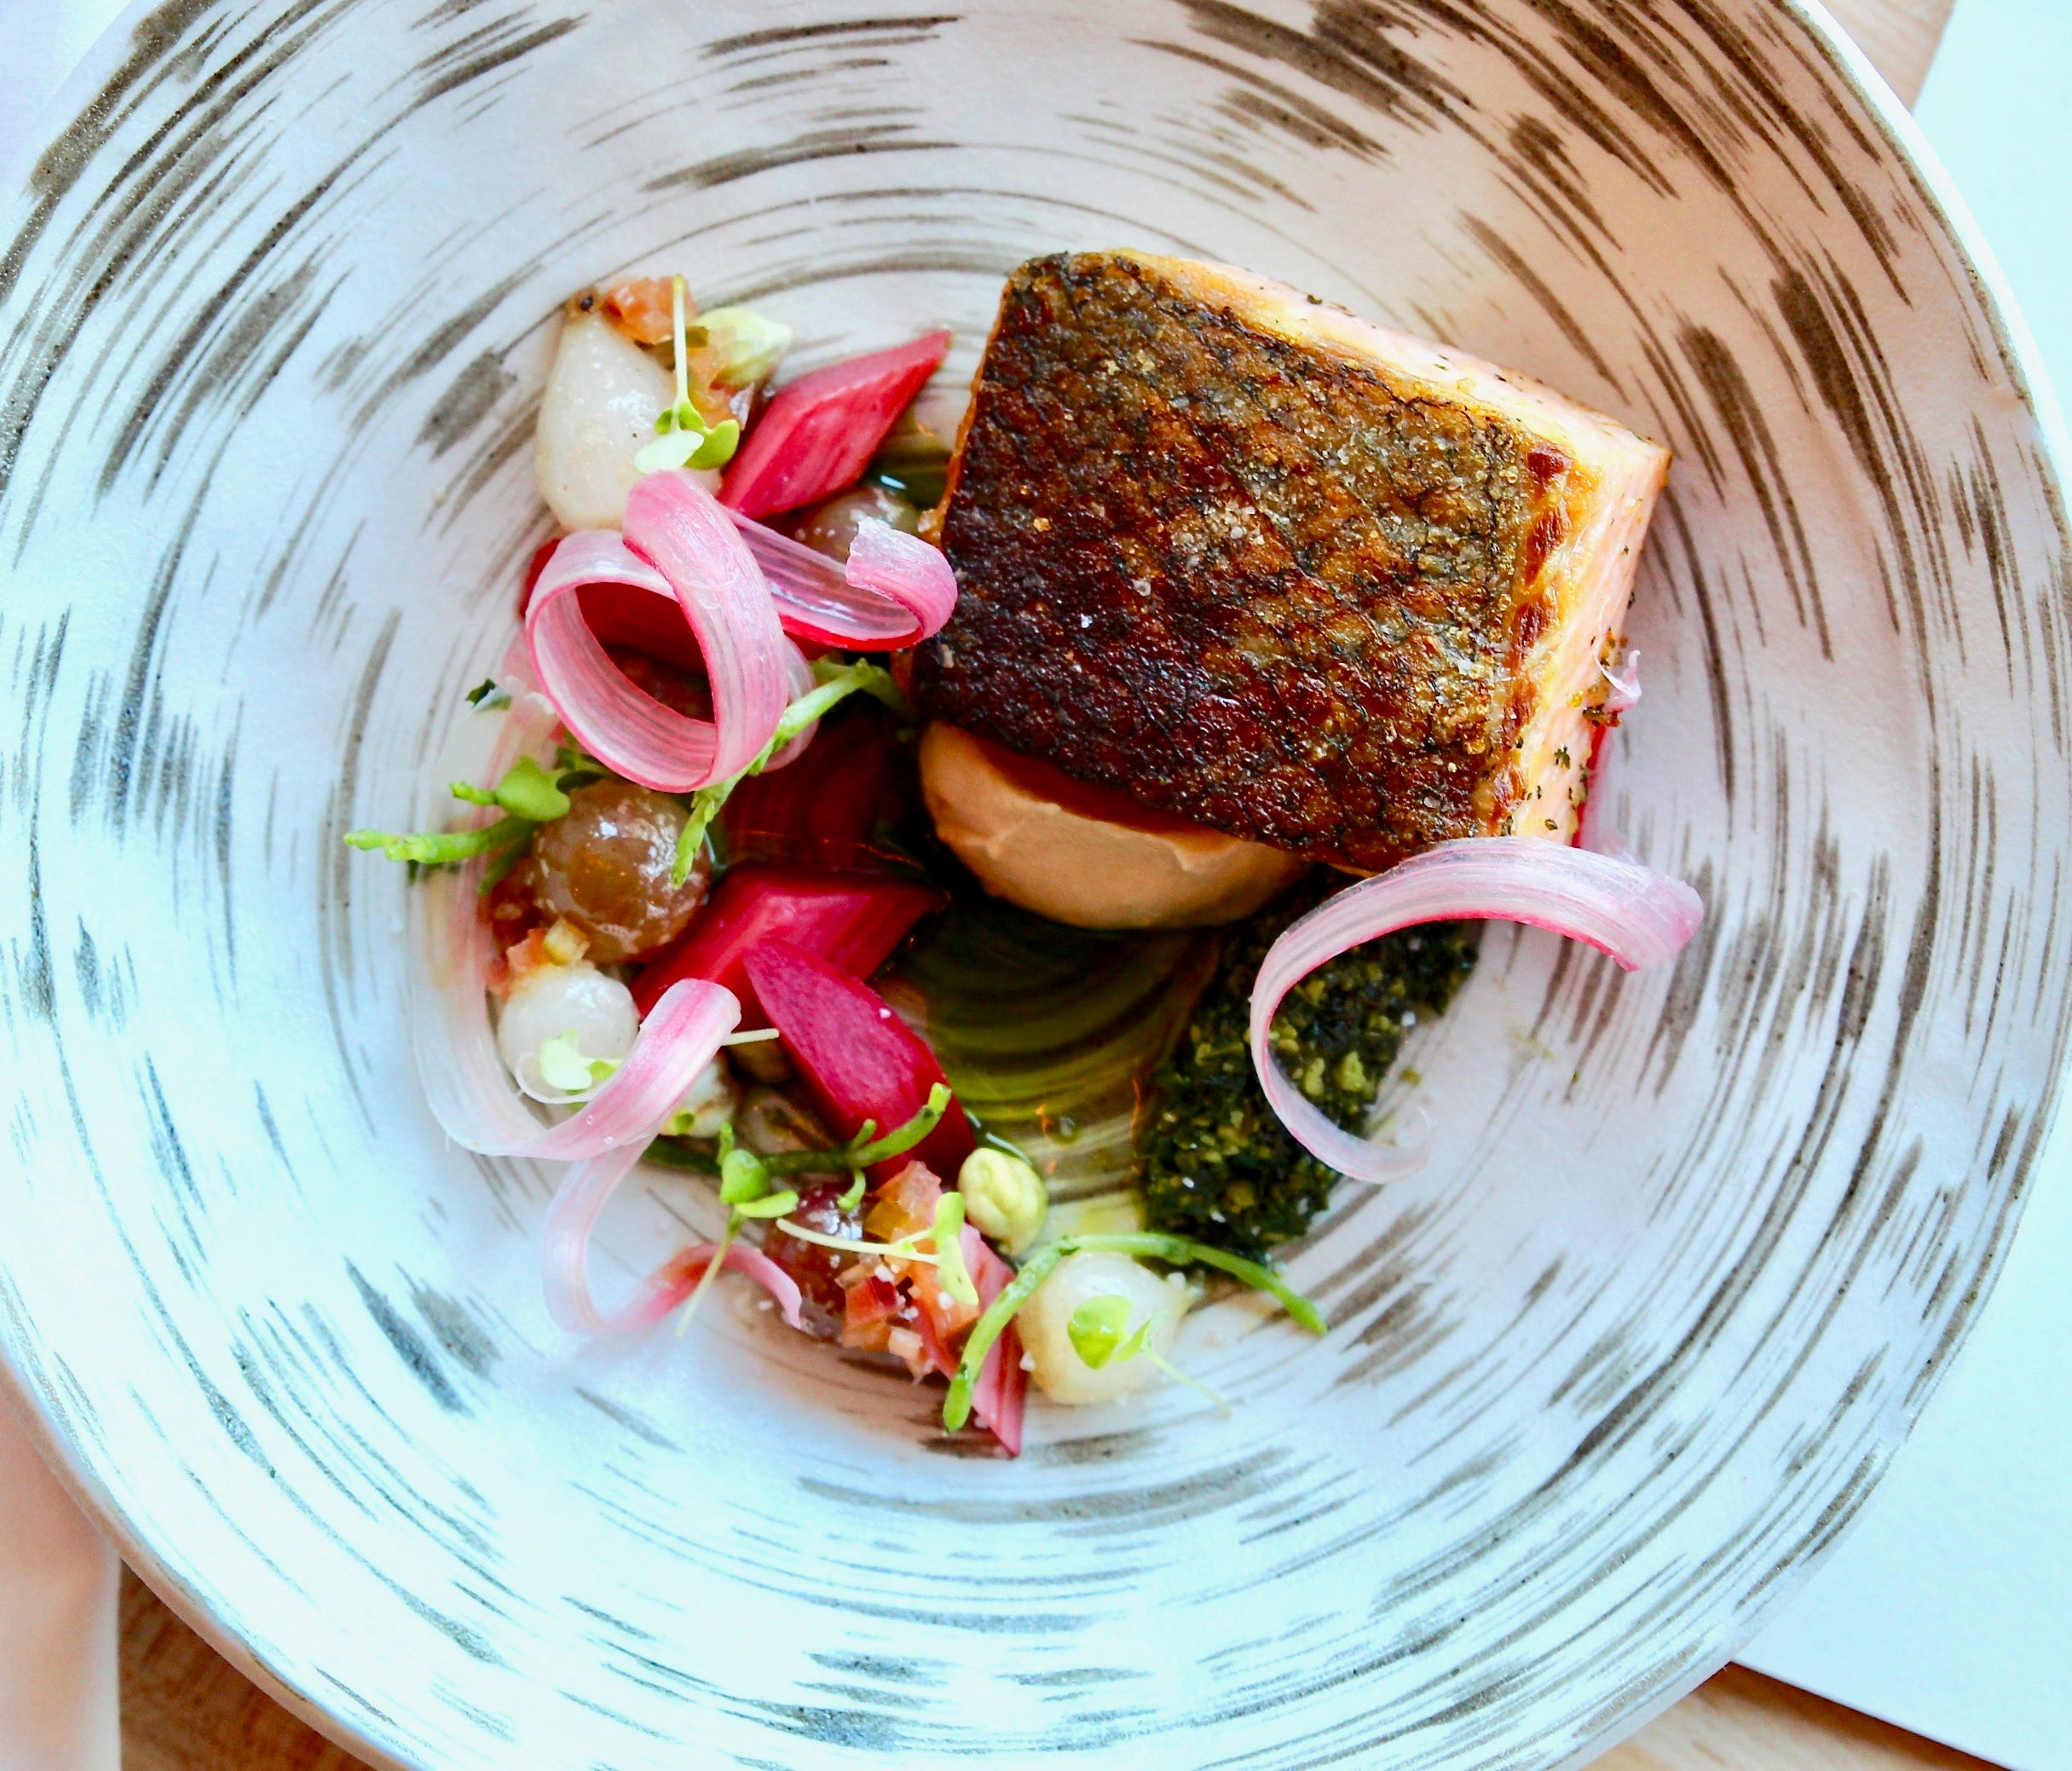 Guild head chef Sterling Ridings serves seasonal fare with an emphasis on seafood, such as Atlantic Salmon with muskat grape, smoked shallot soubise and rhubarb in the spring.